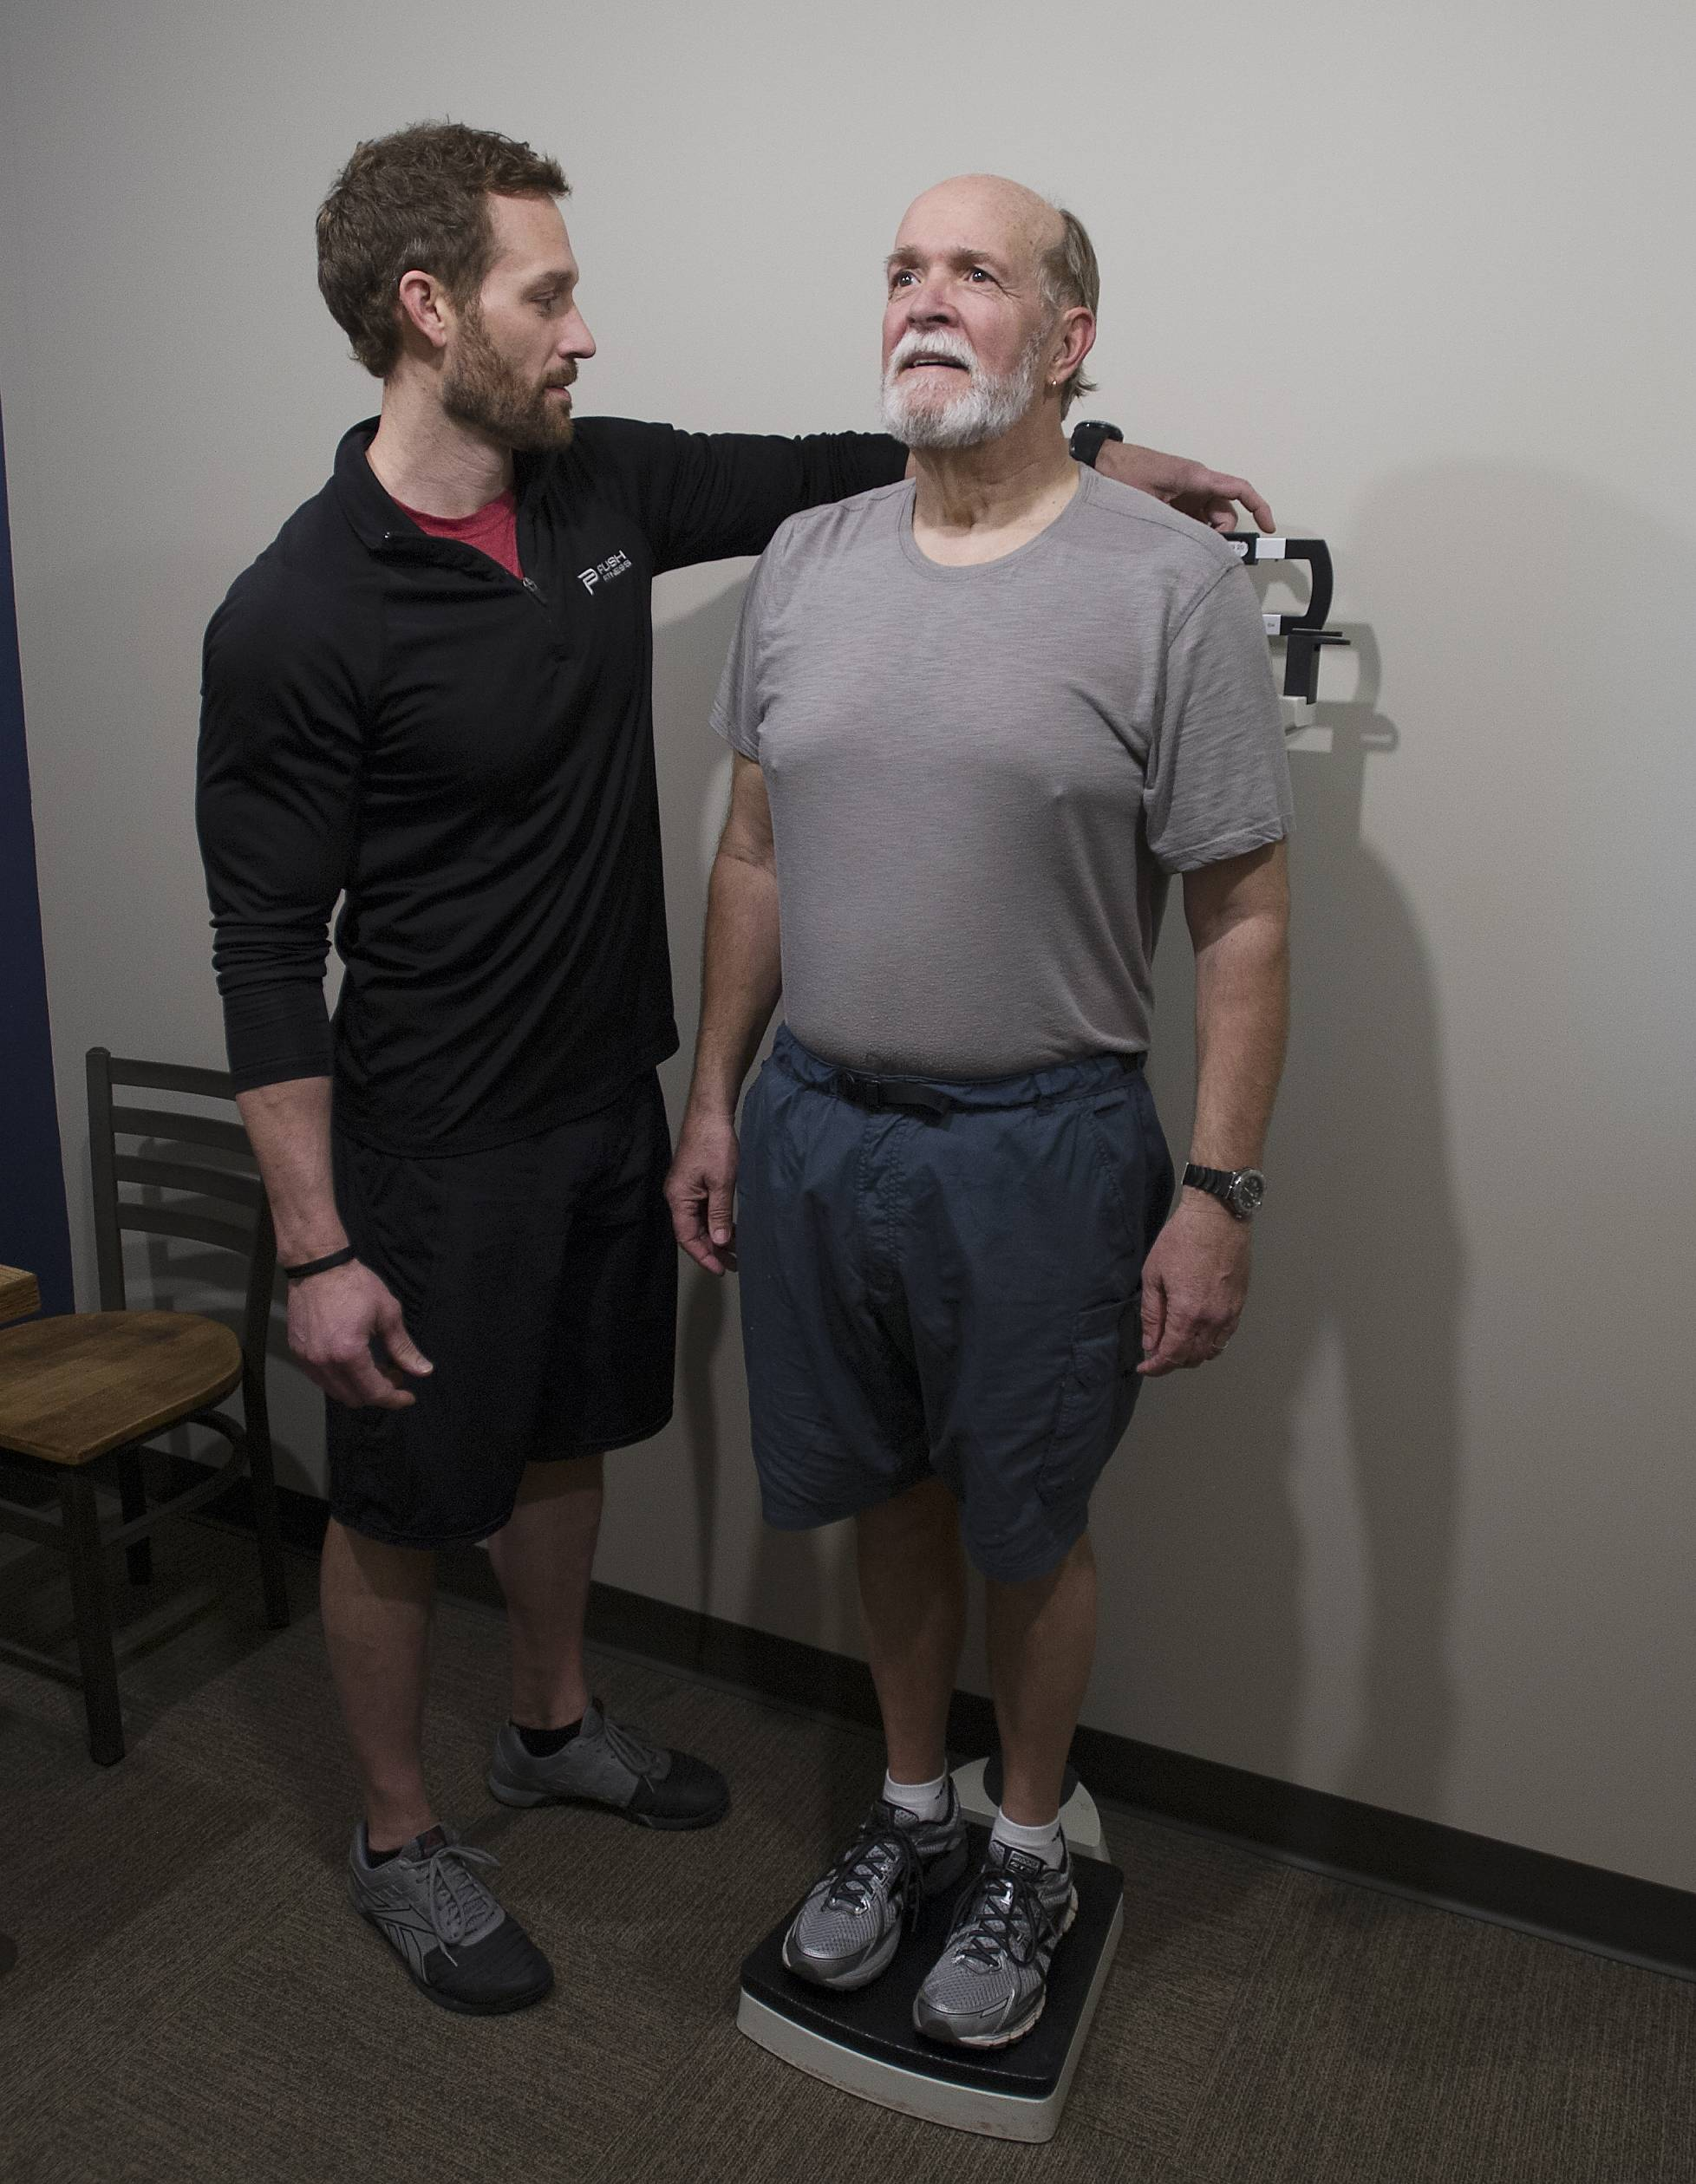 Russ Page of Antioch has his final weigh-in at Push Fitness in Schaumburg by his trainer Josh Steckler, owner of Push Fitness.